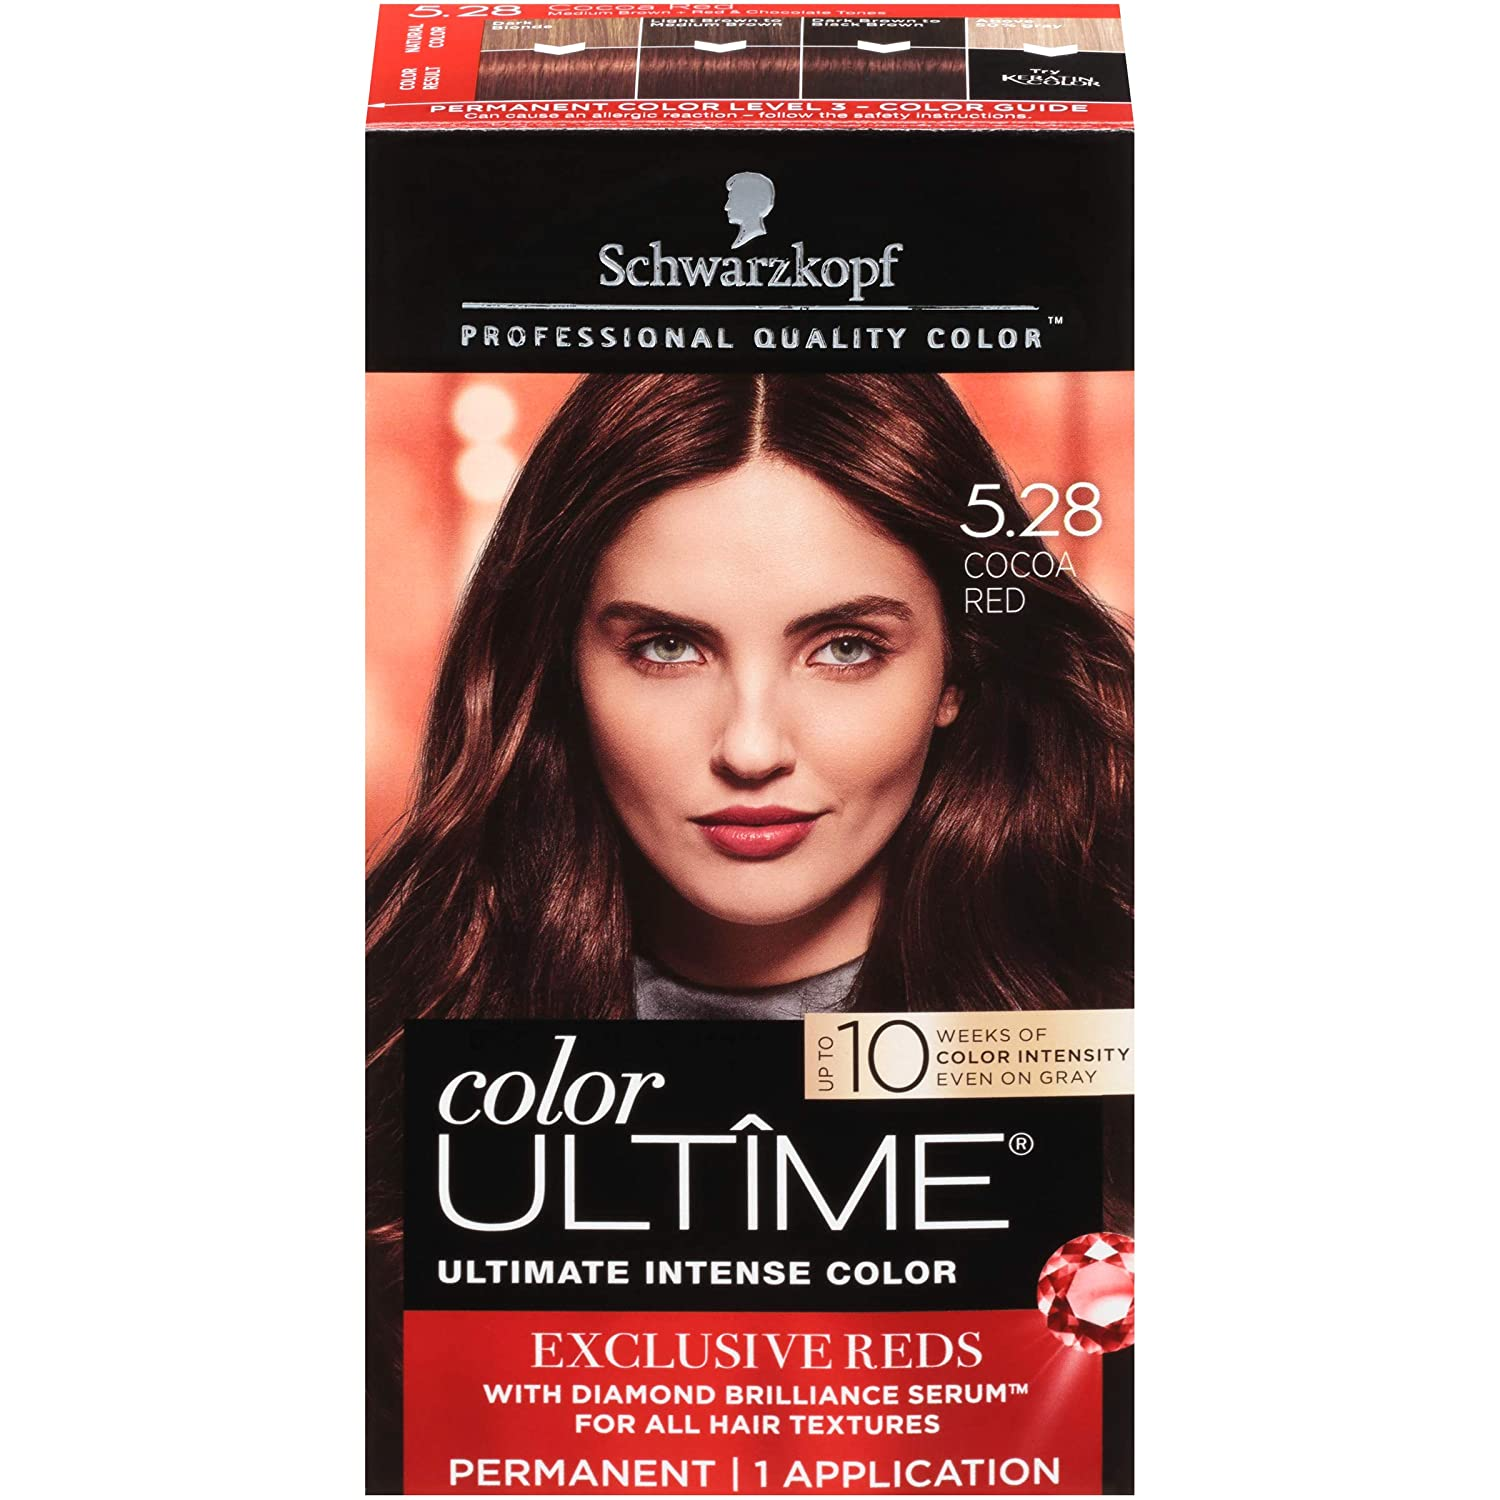 WHOLESALE Schwarzkopf COLOR ULTIME HAIR COLOR CREAM - COCOA RED 5.28 - 48 PIECE LOT